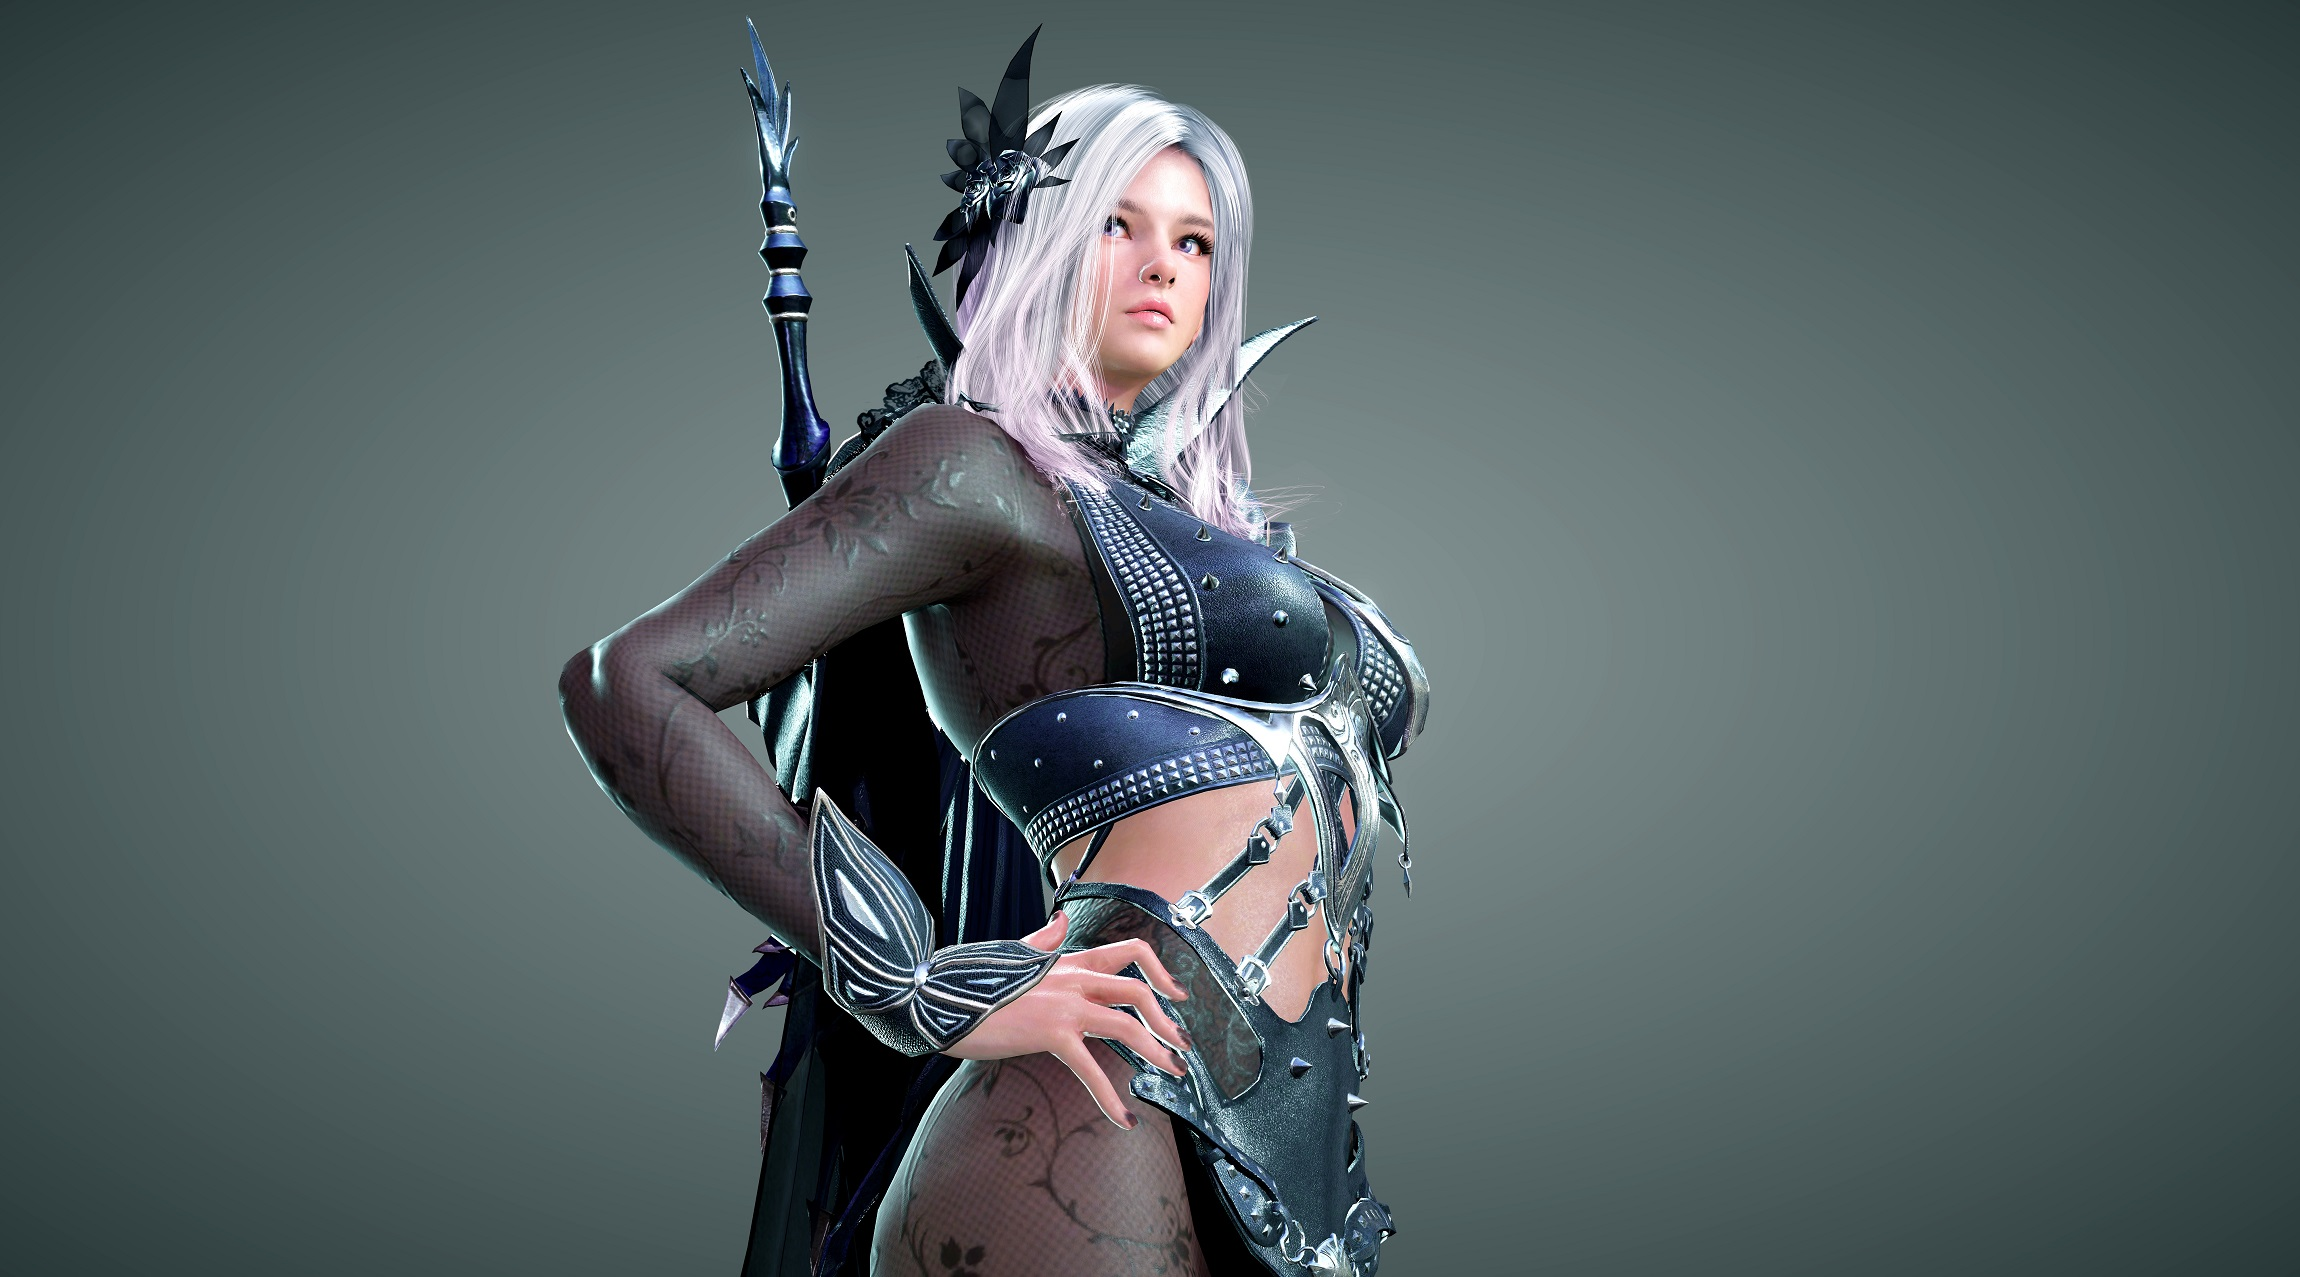 Dark Knight guide - Guide to all classes in Black Desert Online